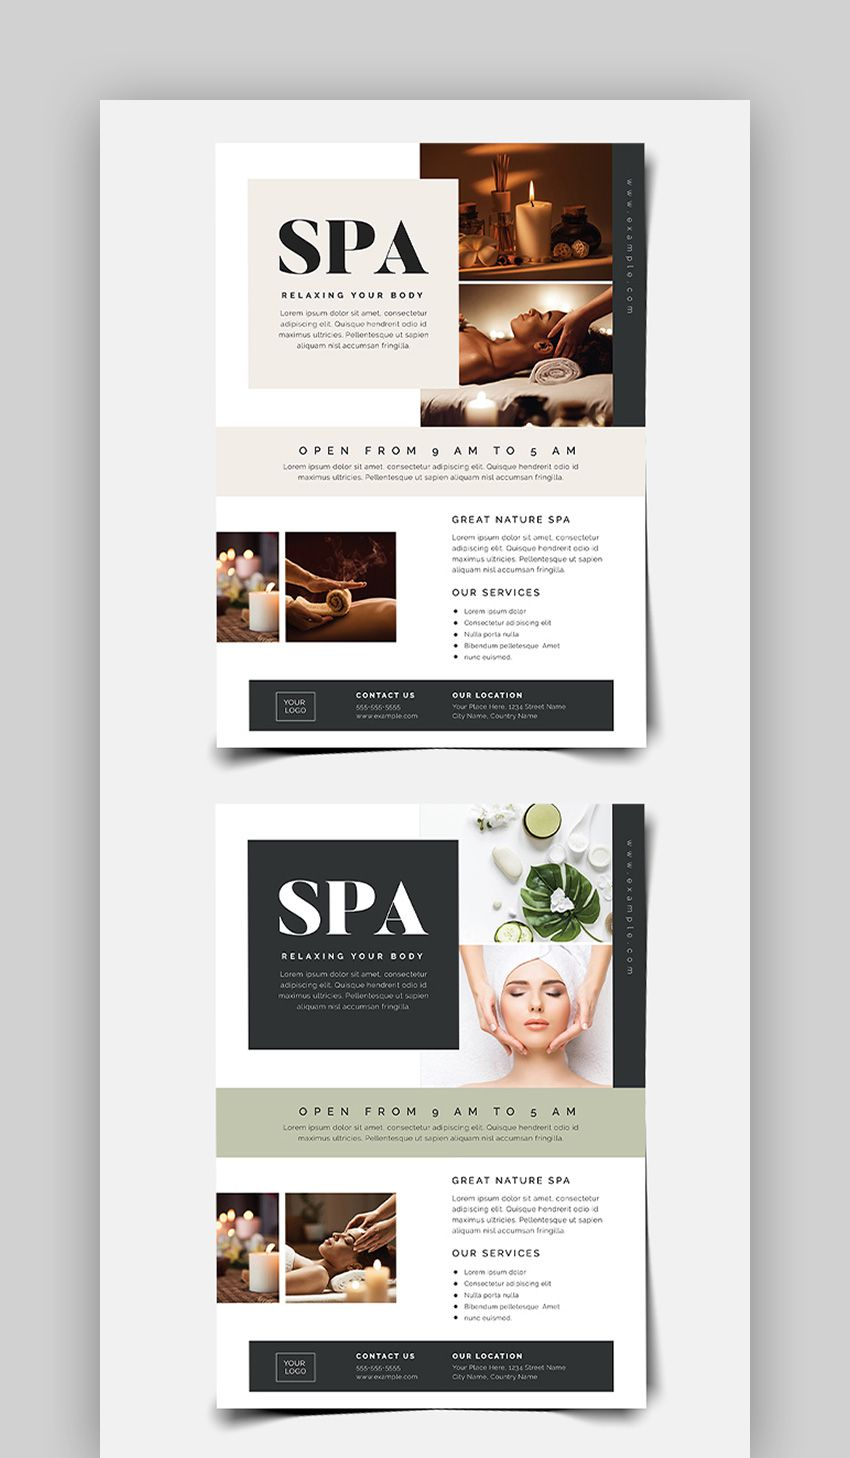 014 Stupendou Free Flyer Design Template Image  Templates Online Download PsdFull